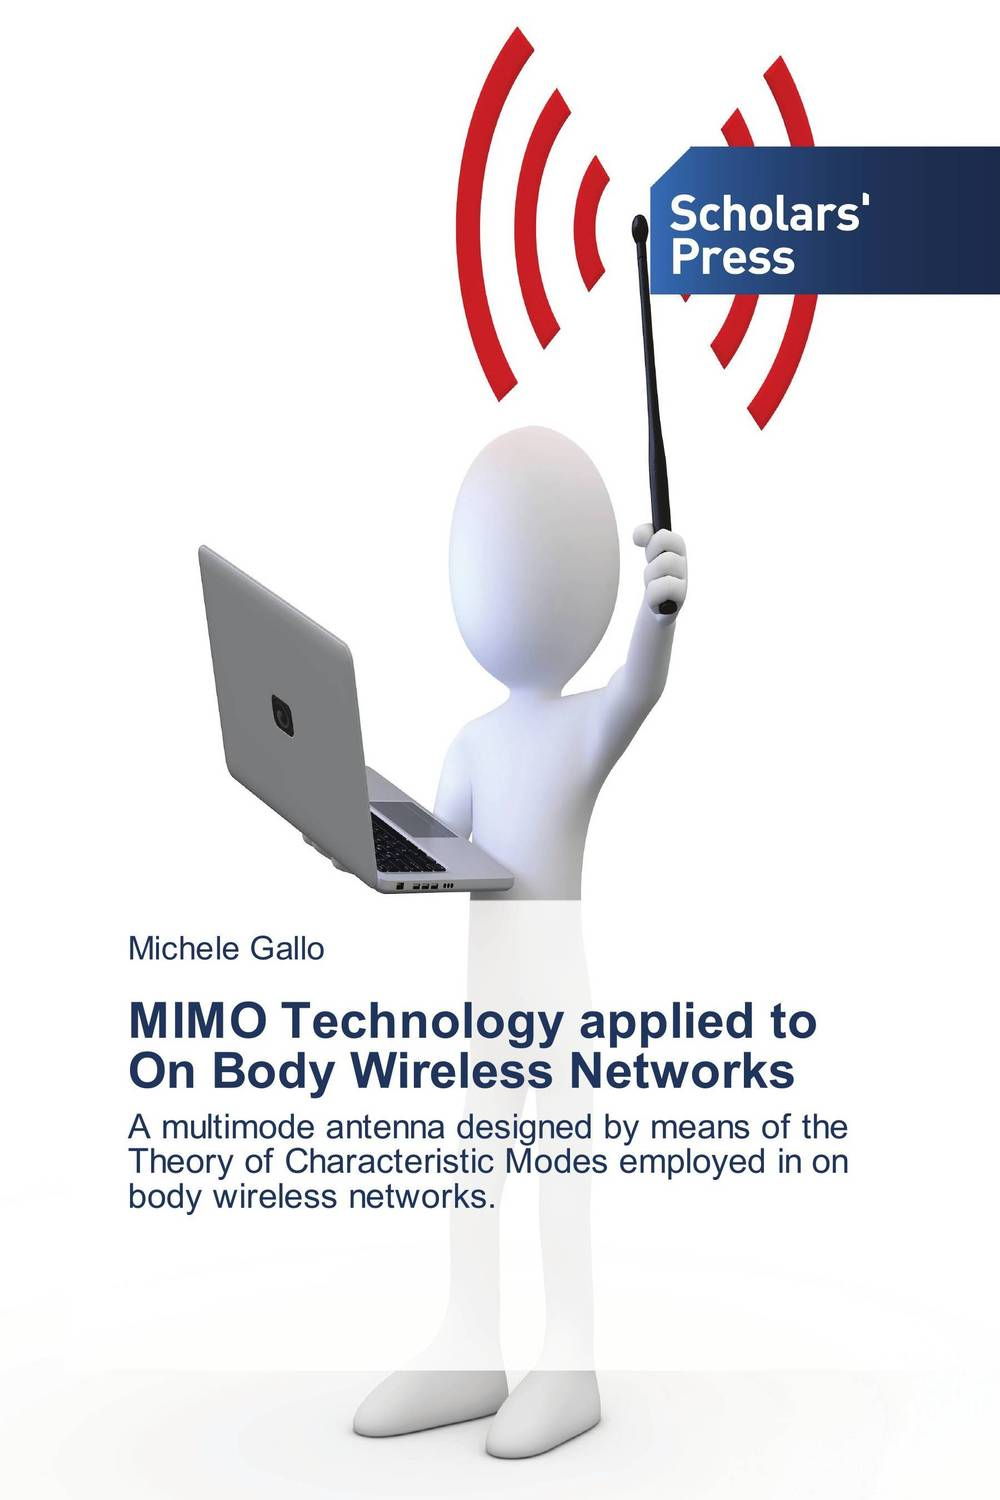 MIMO Technology applied to On Body Wireless Networks